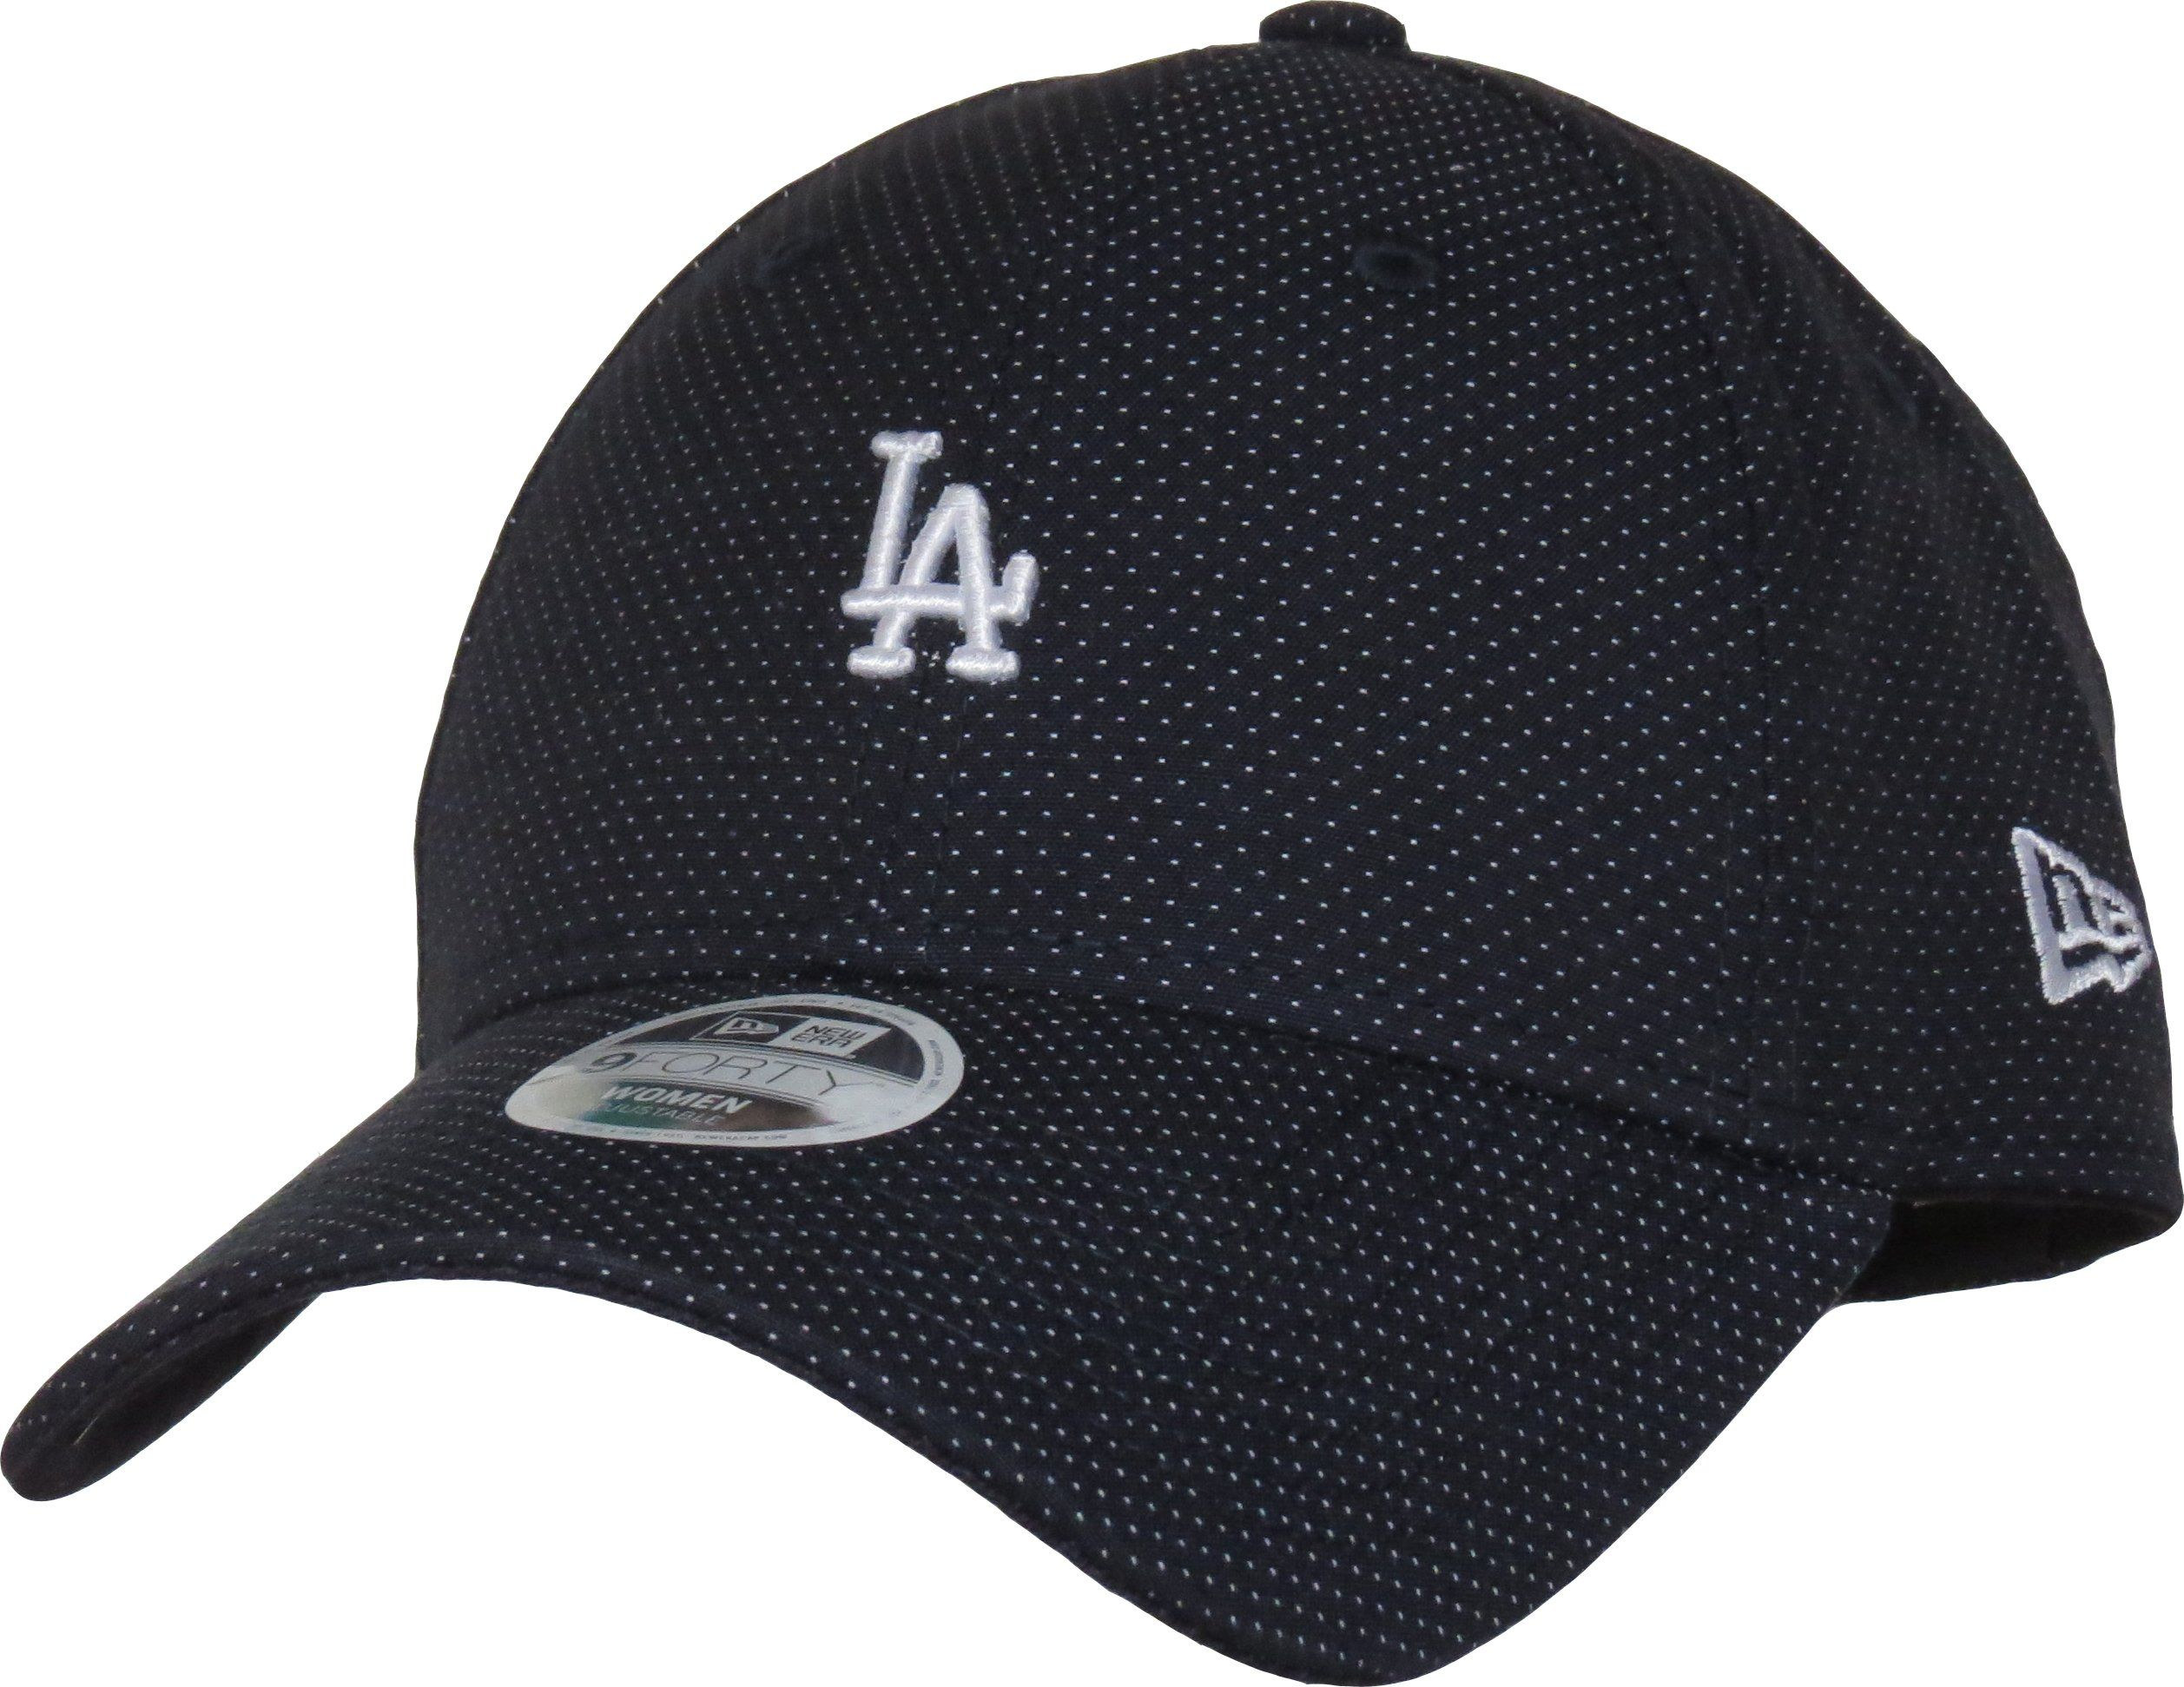 f2bda972 LA Dodgers Womens New Era 940 Polka Dot Navy Baseball Cap in 2019 ...